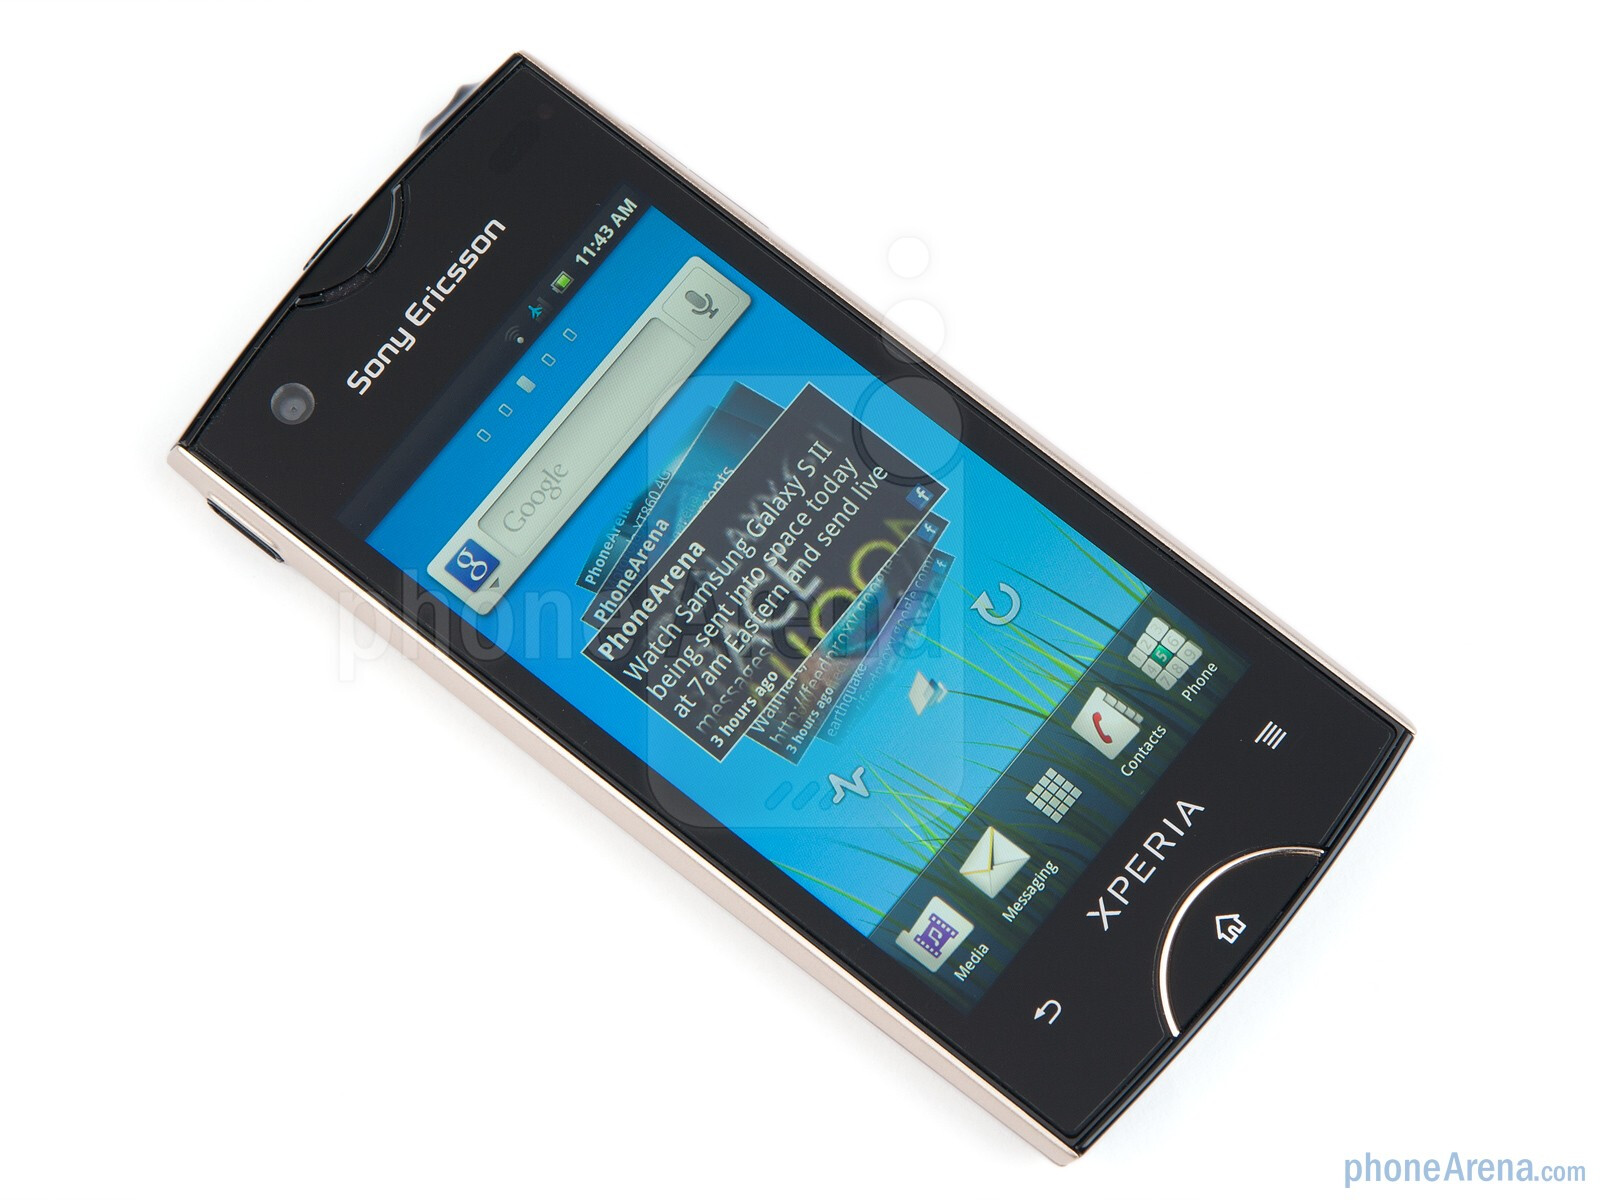 sony ericsson xperia ray preview. Black Bedroom Furniture Sets. Home Design Ideas